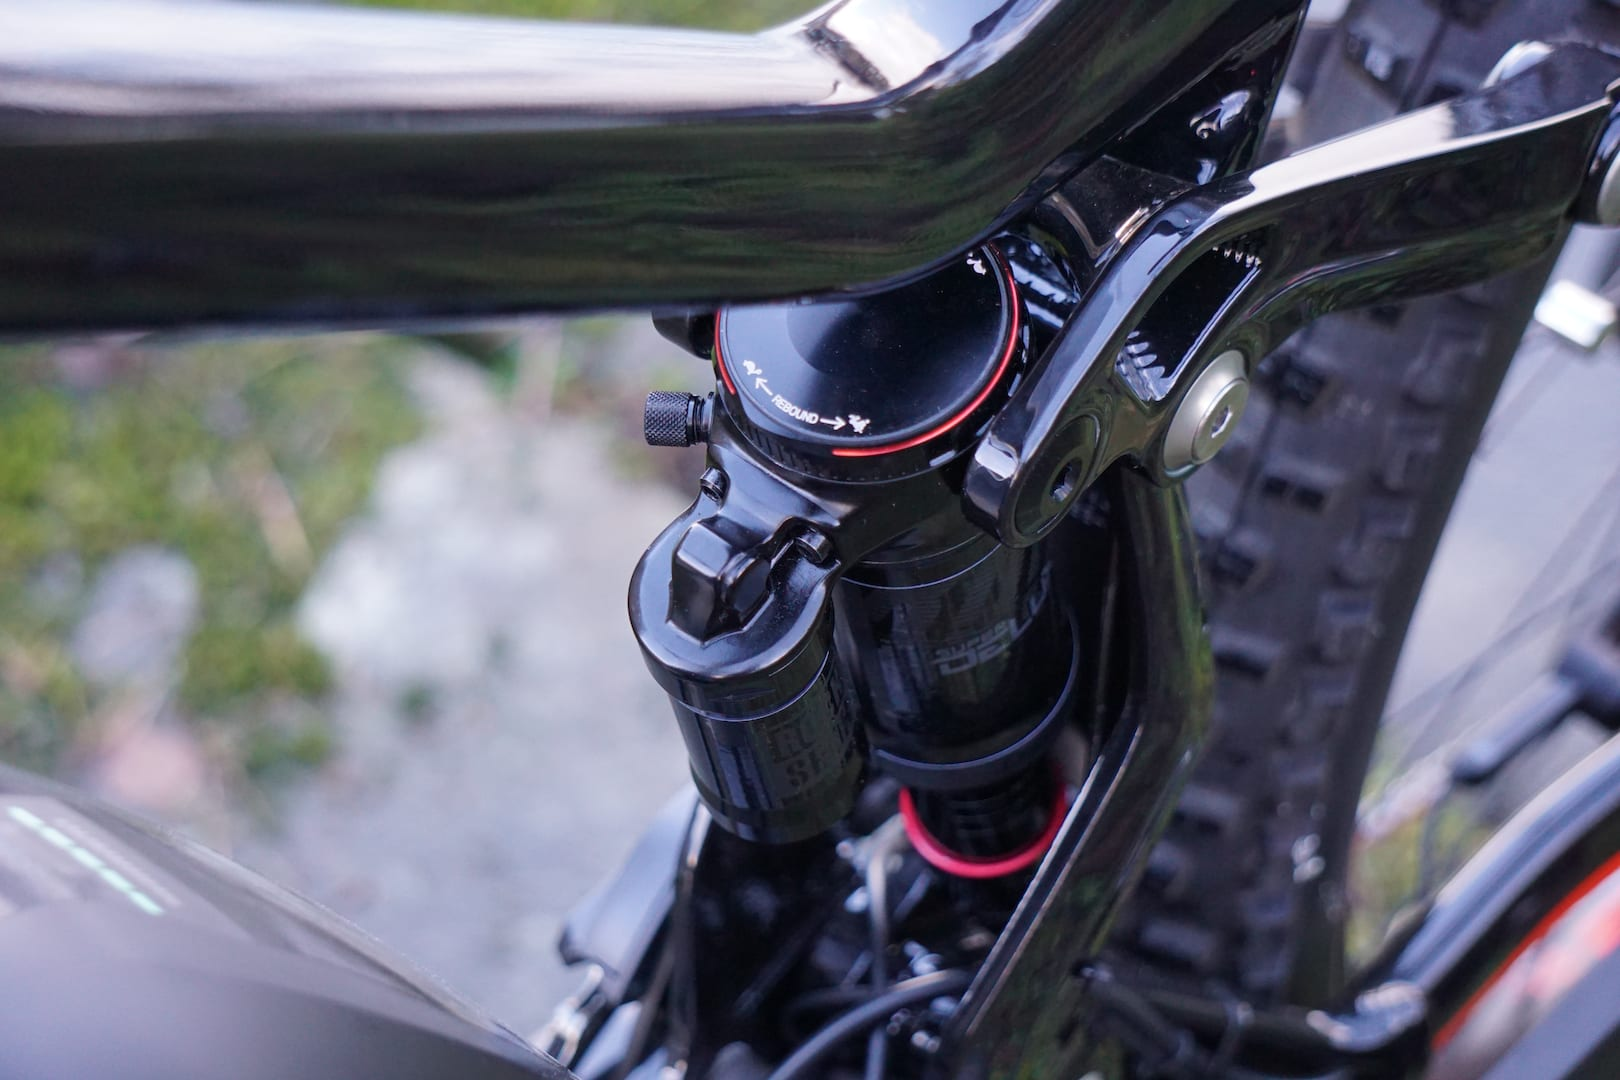 First Look: 2019 Vitus E-Sommet e-MTB With The All New